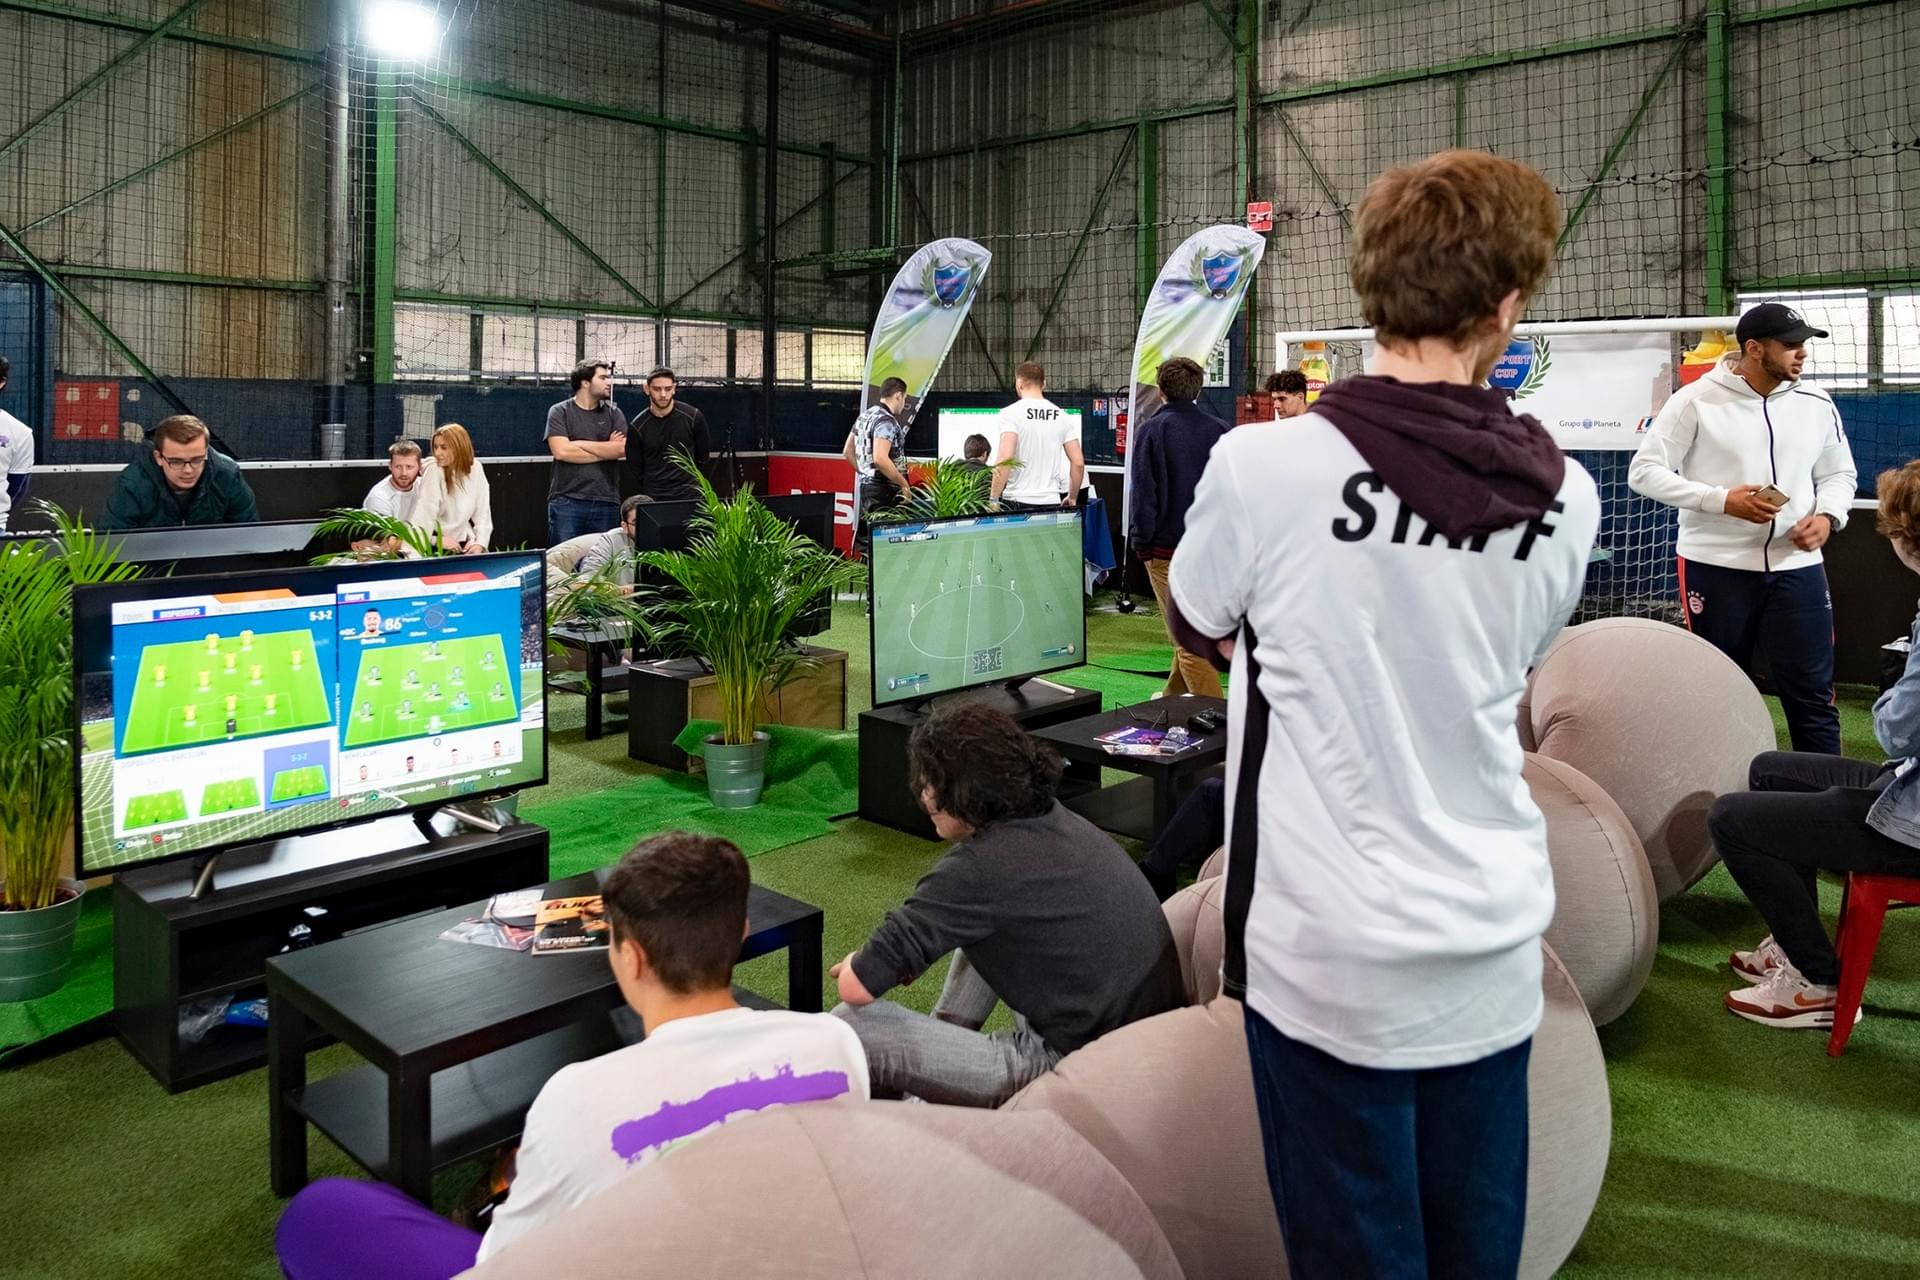 SMS E-SPORT CUP 2019